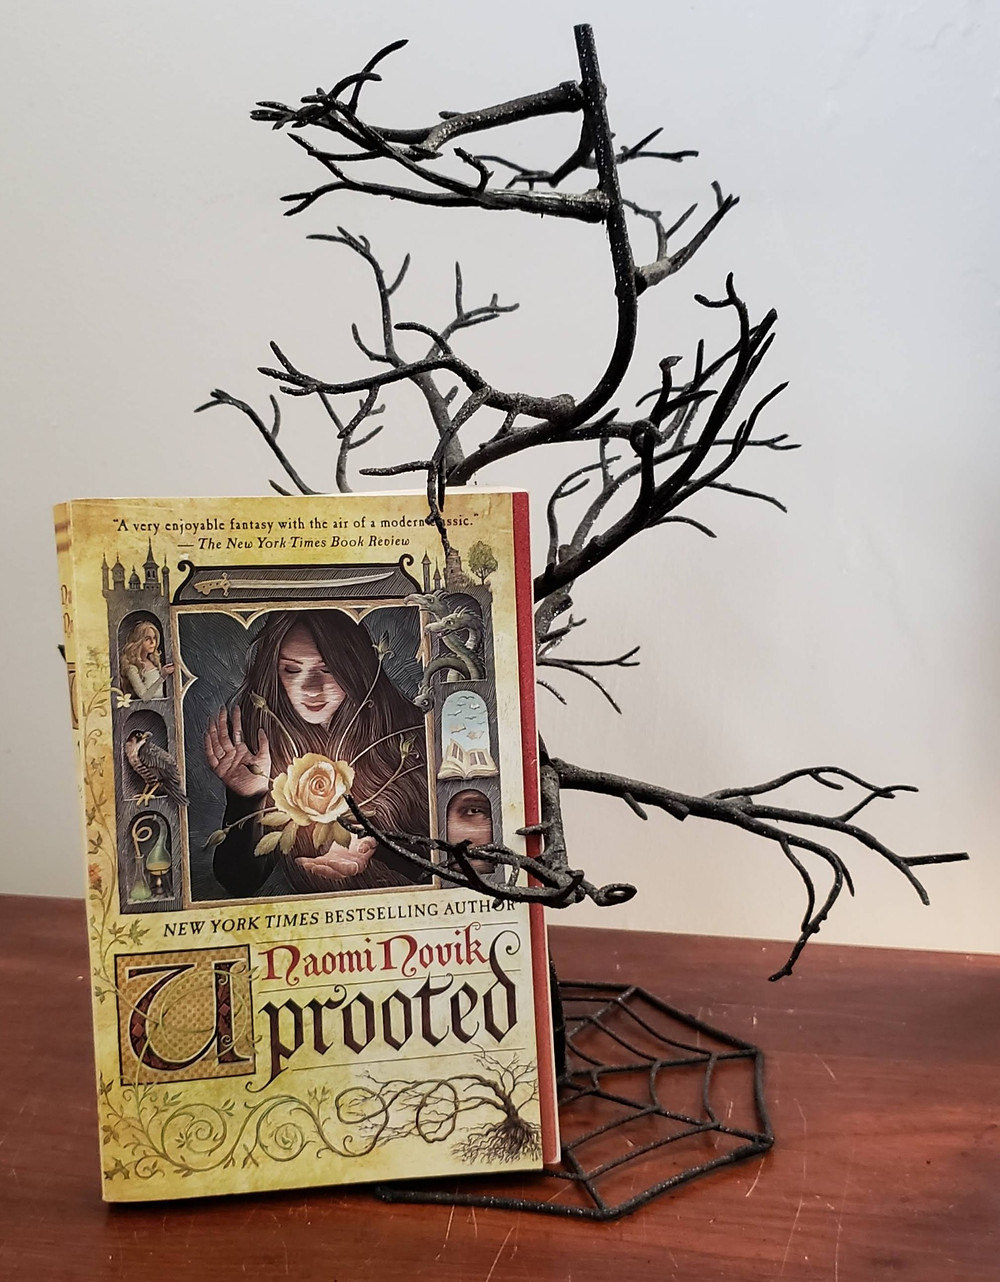 The book Uprooted by Naomi Novik posed with a black skeletal tree.